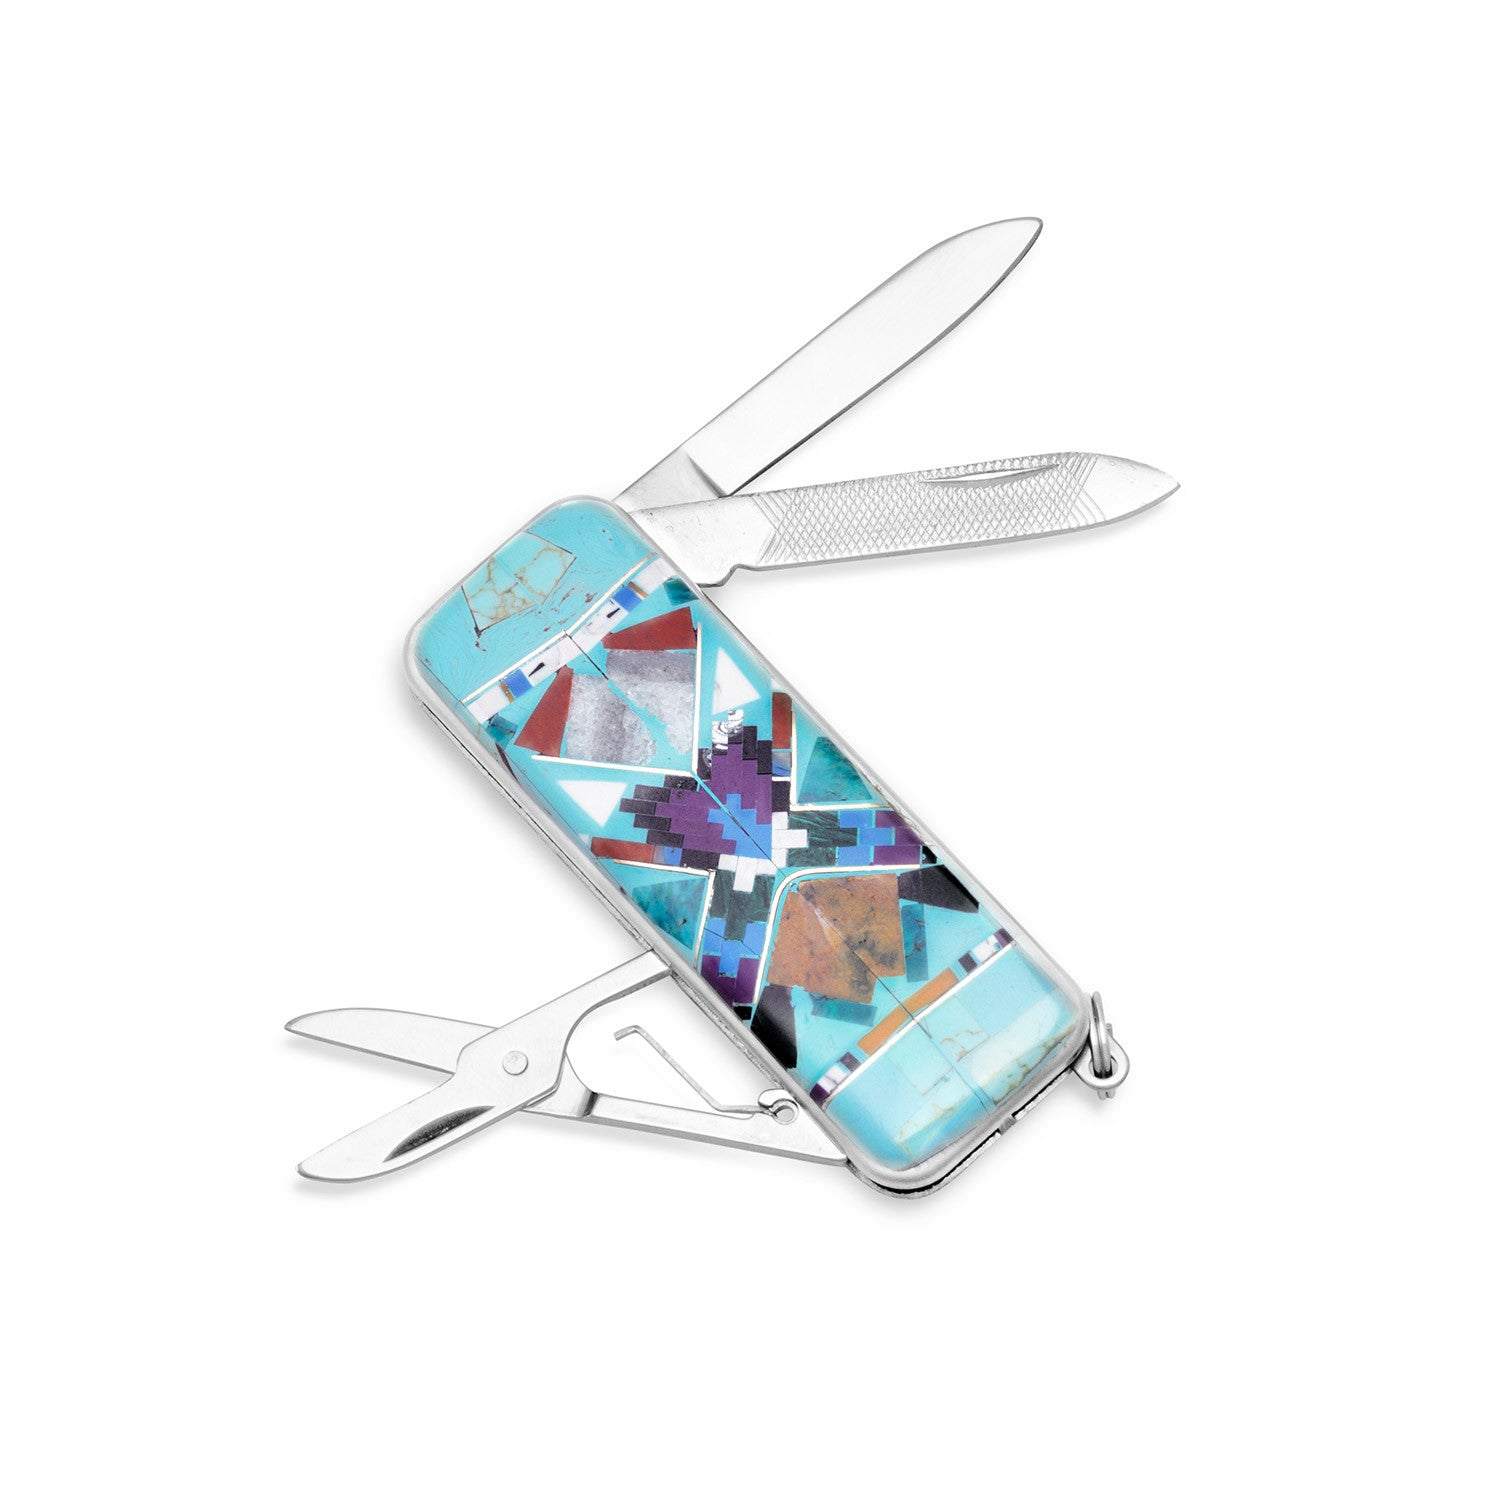 Stainless Steel and Multicolor Imitation Stone POCKET KNIFE Money Clip